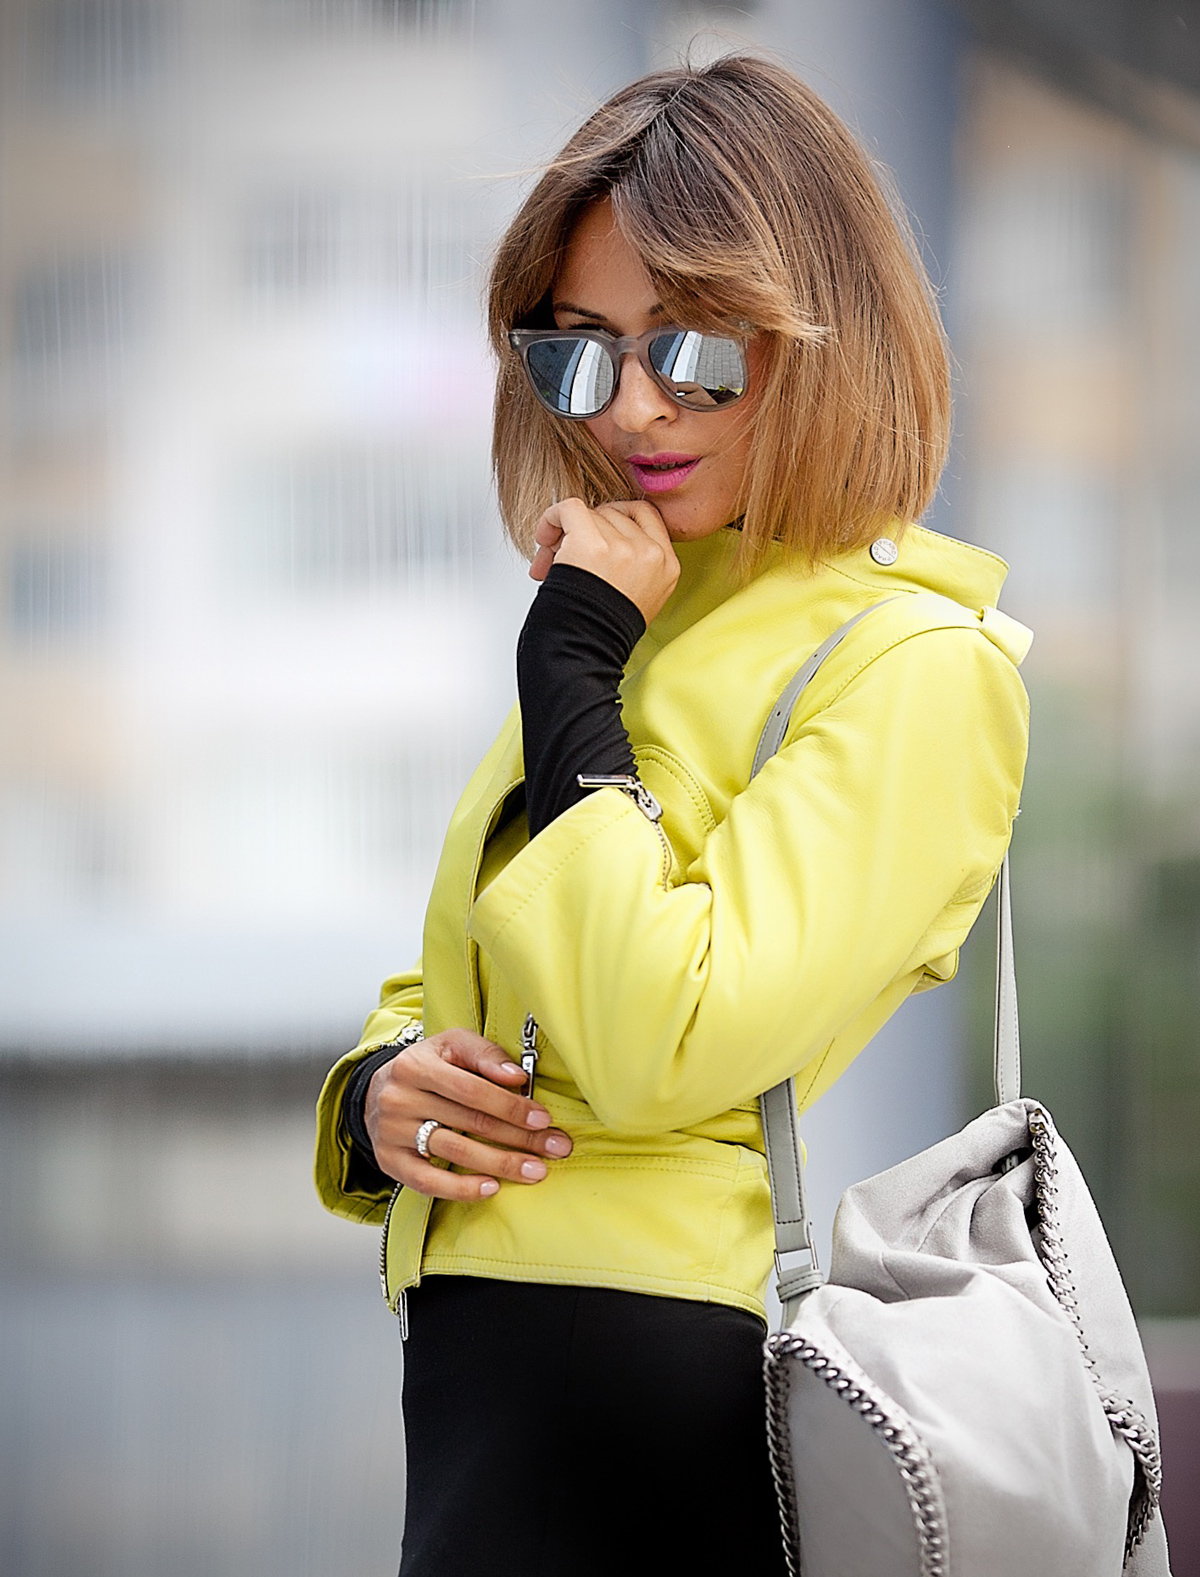 lime-biker-jacket-komono-riviera-sunglasses